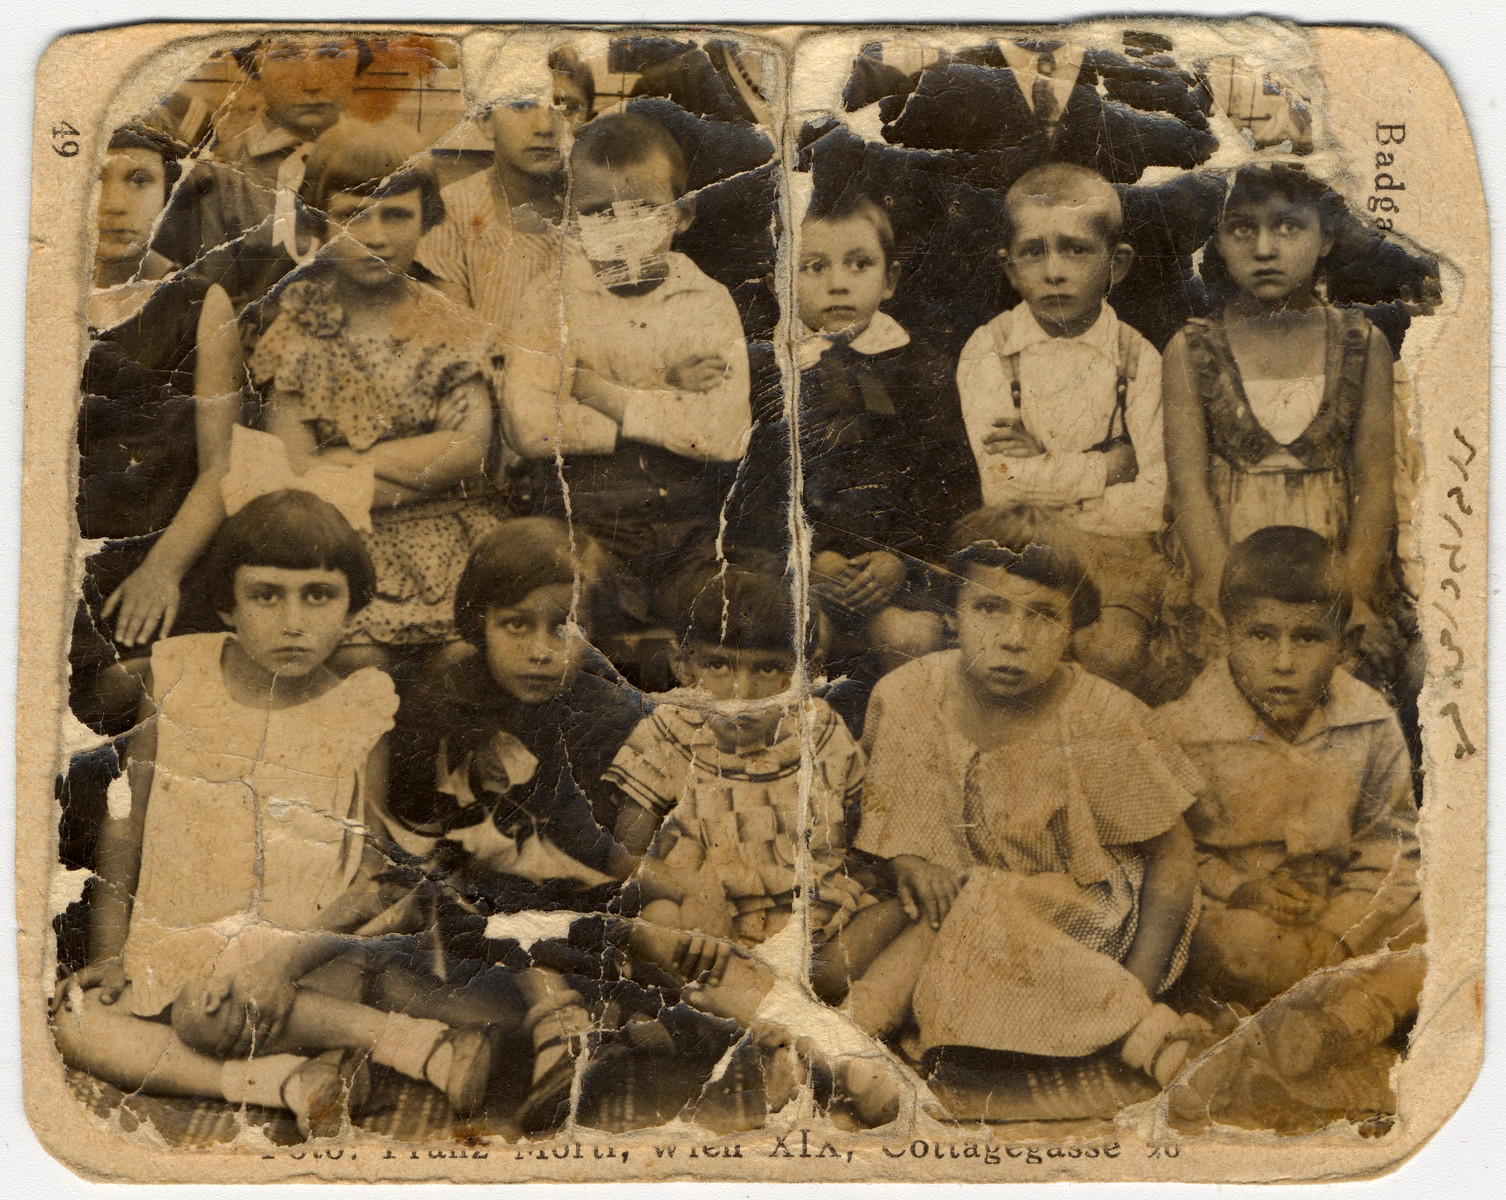 Group portrait of young children in a Jewish school in Nowogrodek.  Esther Ass is pictured in the front row, second from the left.